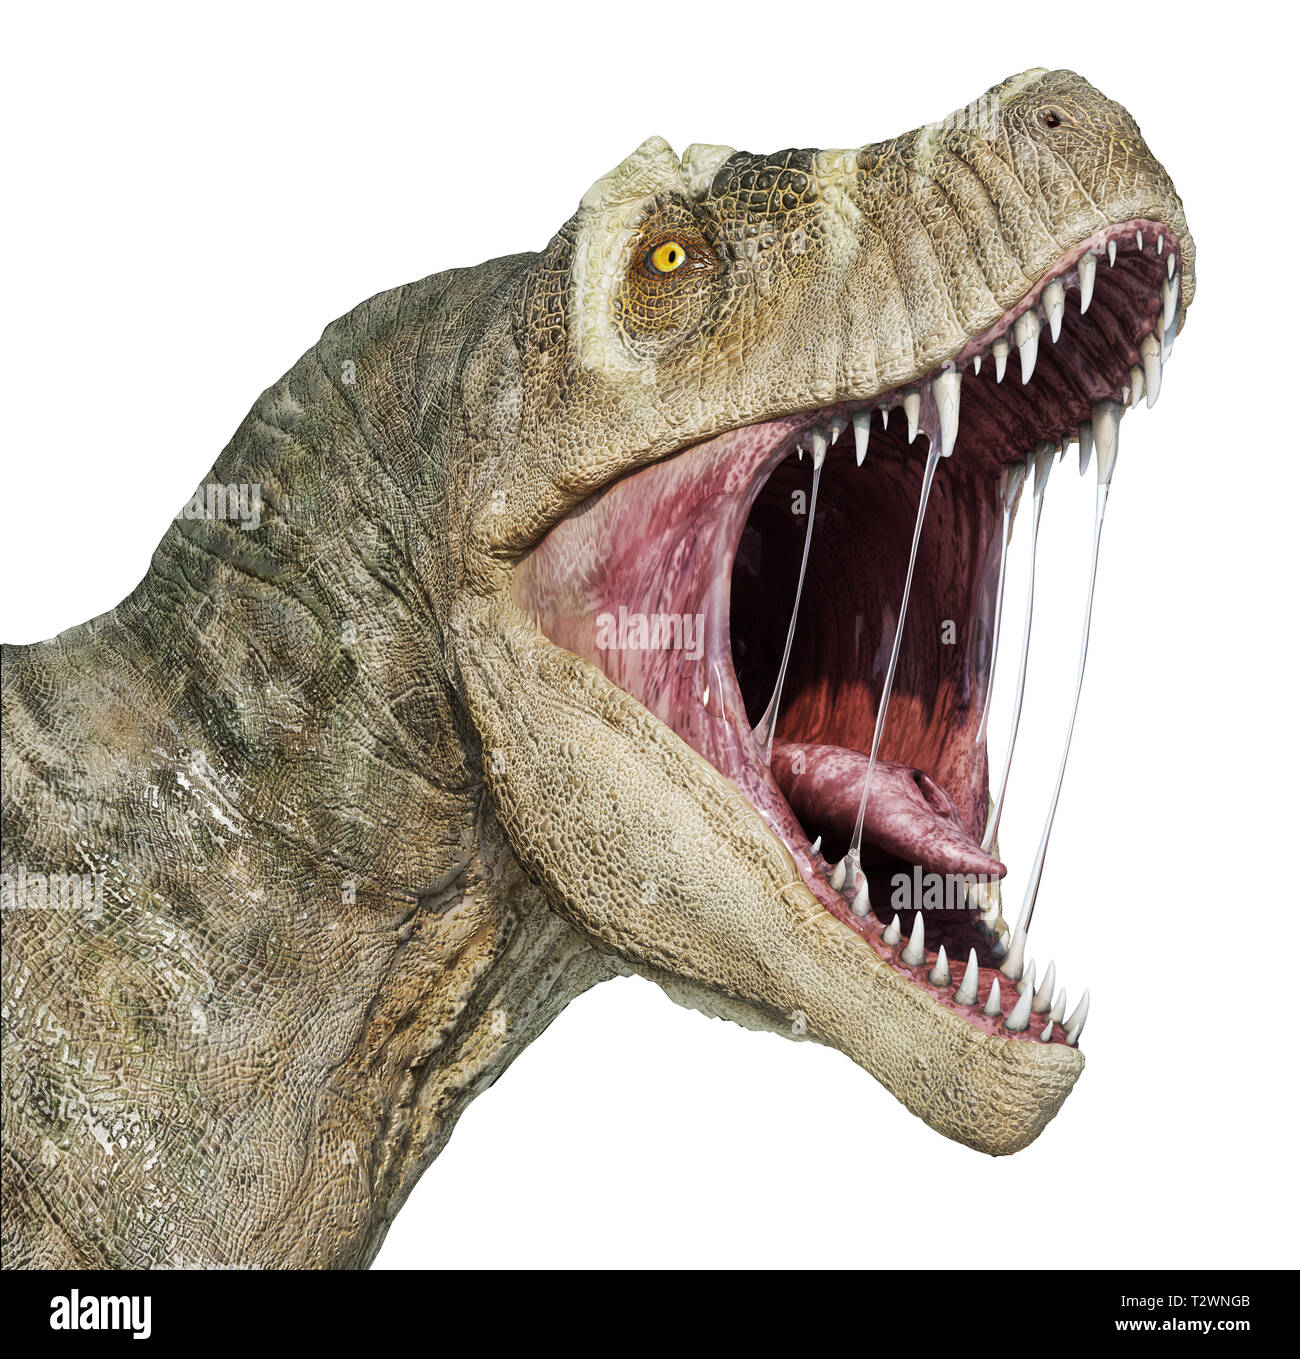 T-rex head close-up with open mouth, isolated on white background. - Stock Image